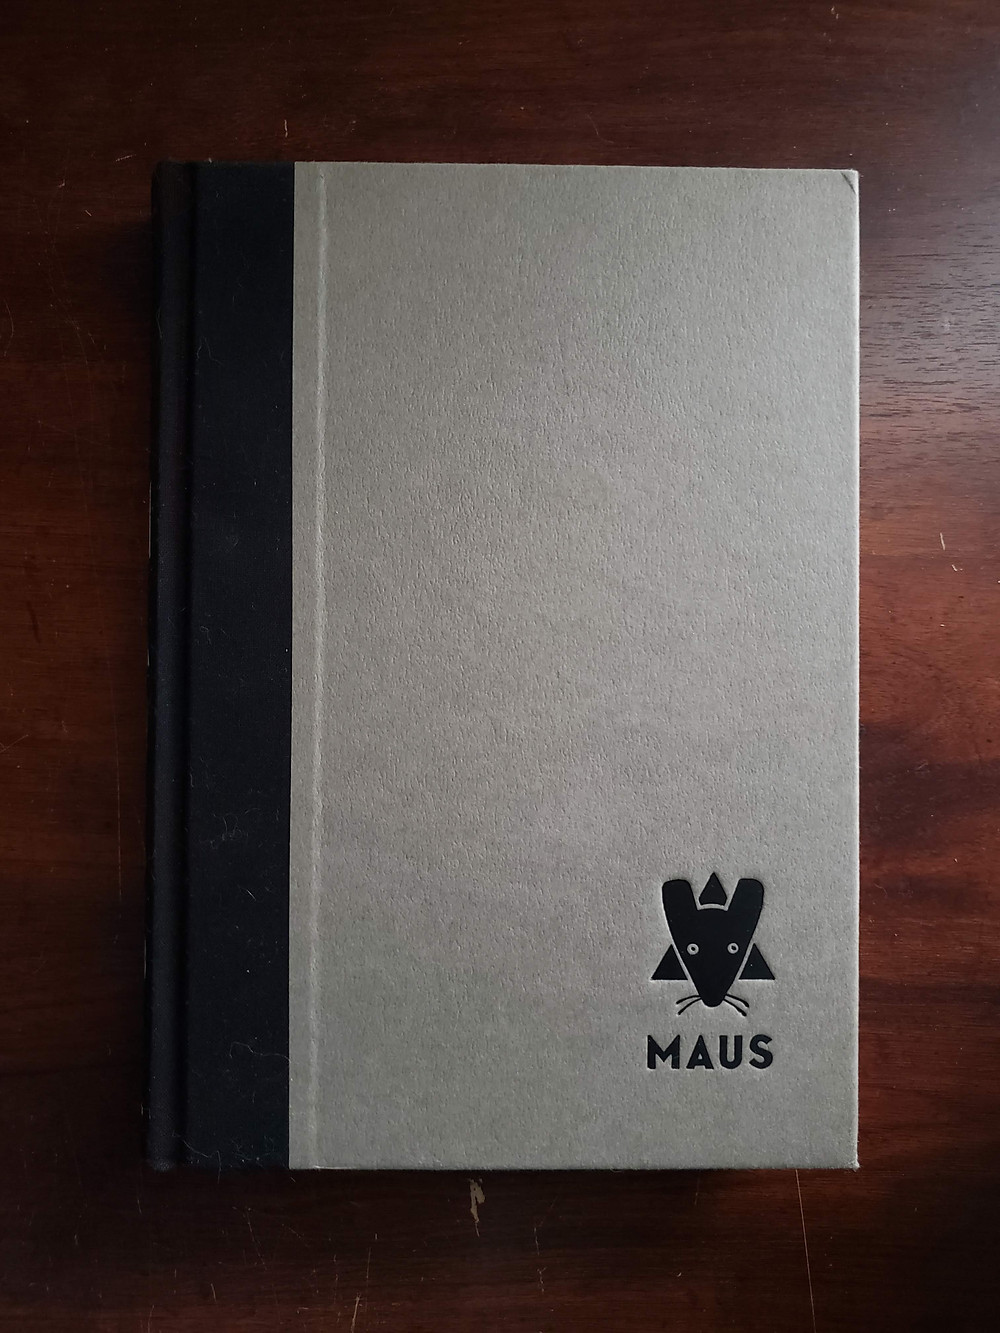 Front image of the cover for The Complete Maus by Art Spiegelman.